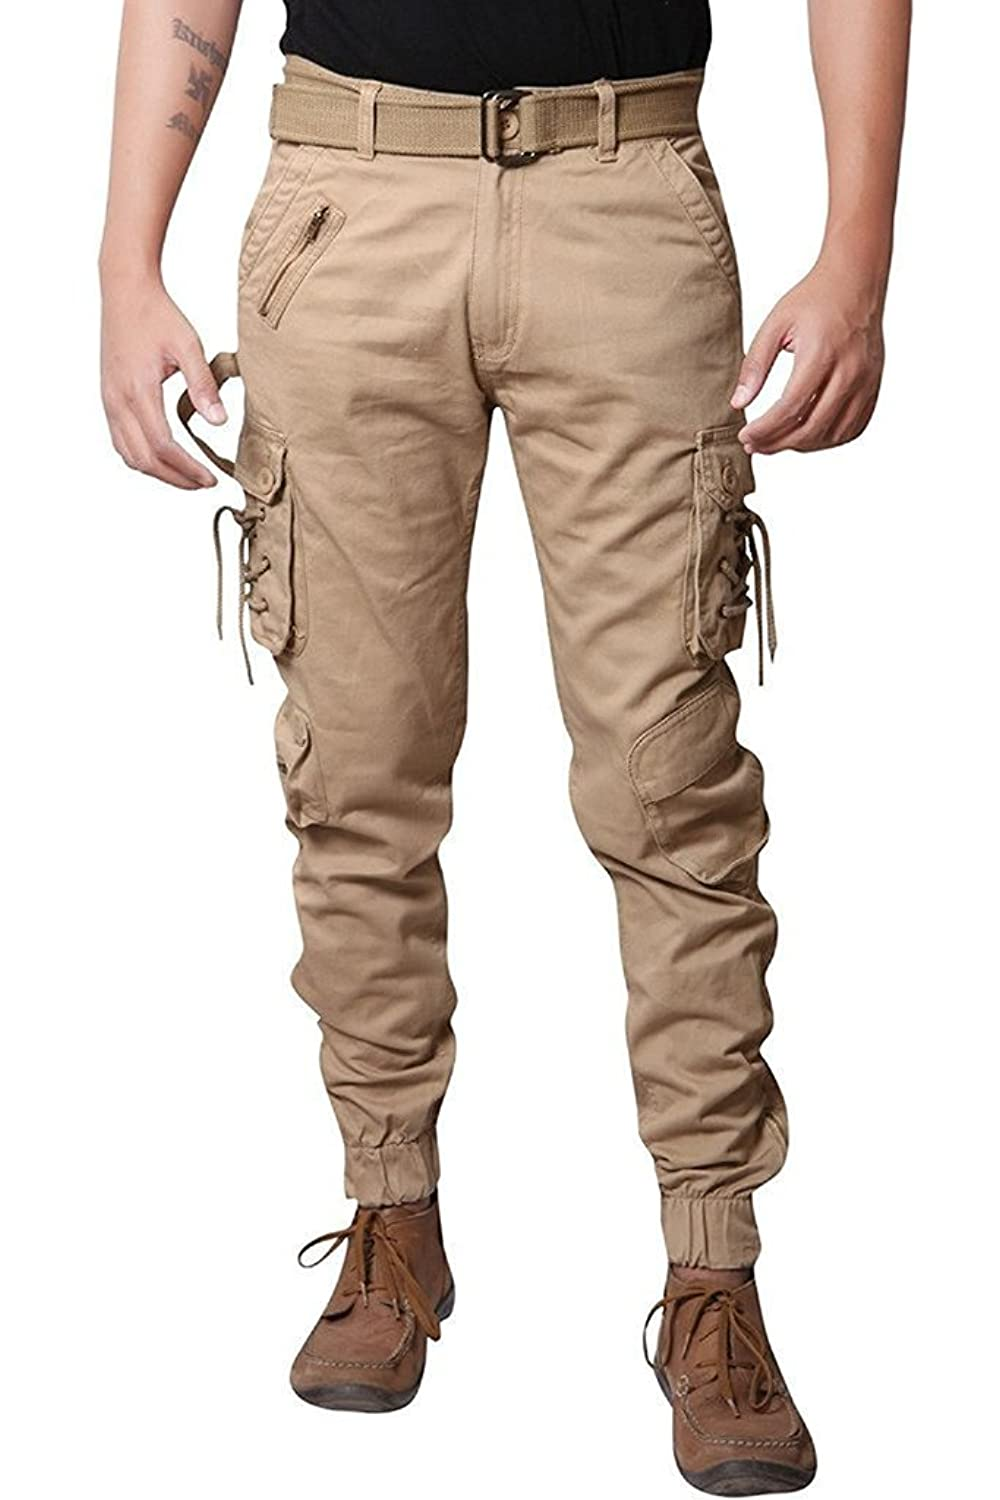 Jubination Men's Cotton Solid Relaxed Fit Zipper Cargo Jogger Pants